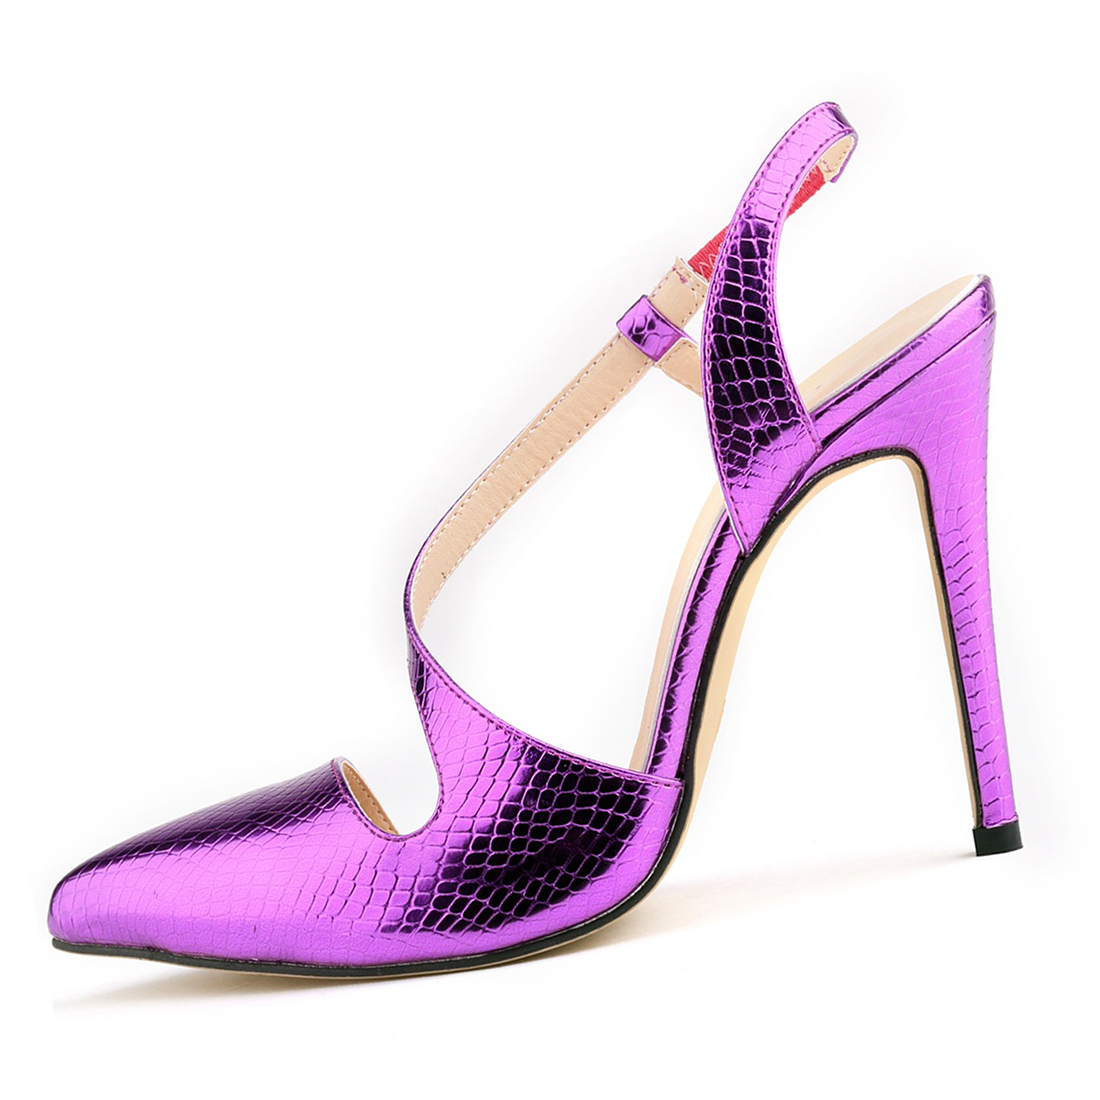 Women crocodile skin Pumps summer spring Pointed Toe High Heels Sexy Leather shoes for women sandals Pumps, fashion new spring summer med high heels good quality pointed toe women lady flock leather solid simple sexy casual pumps shoes